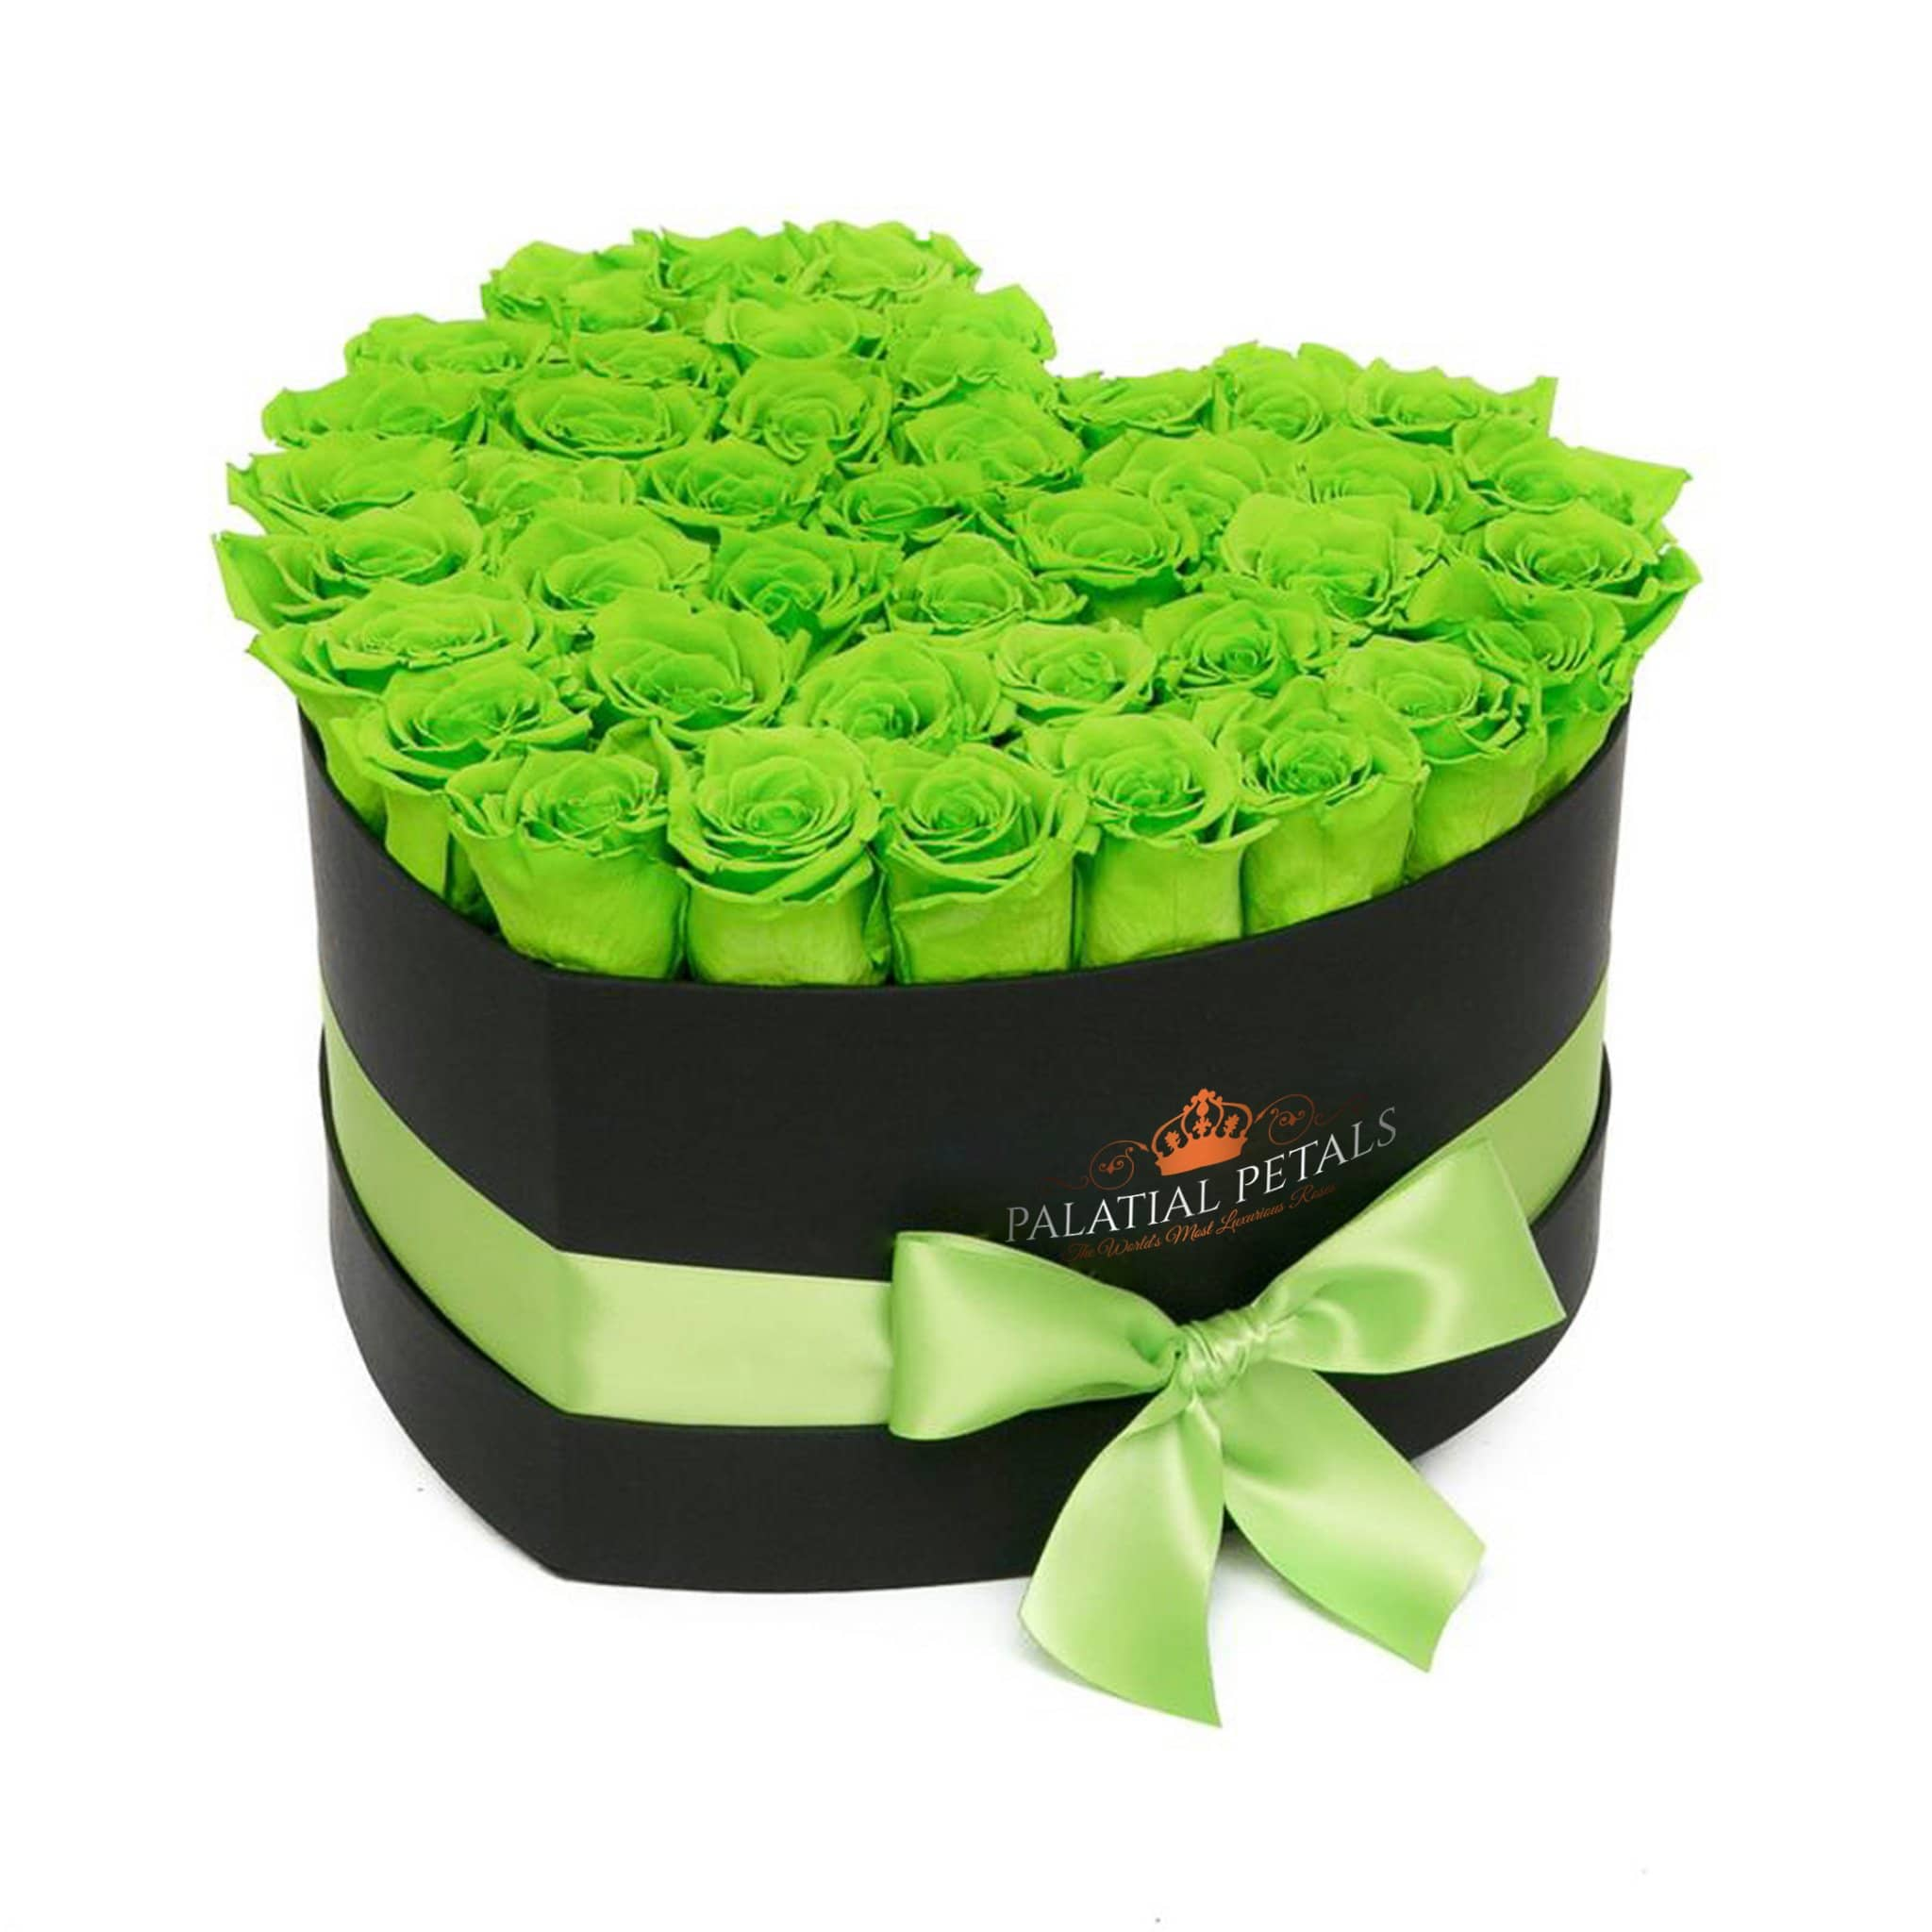 Green Roses That Last A Year - Love Heart Rose Box